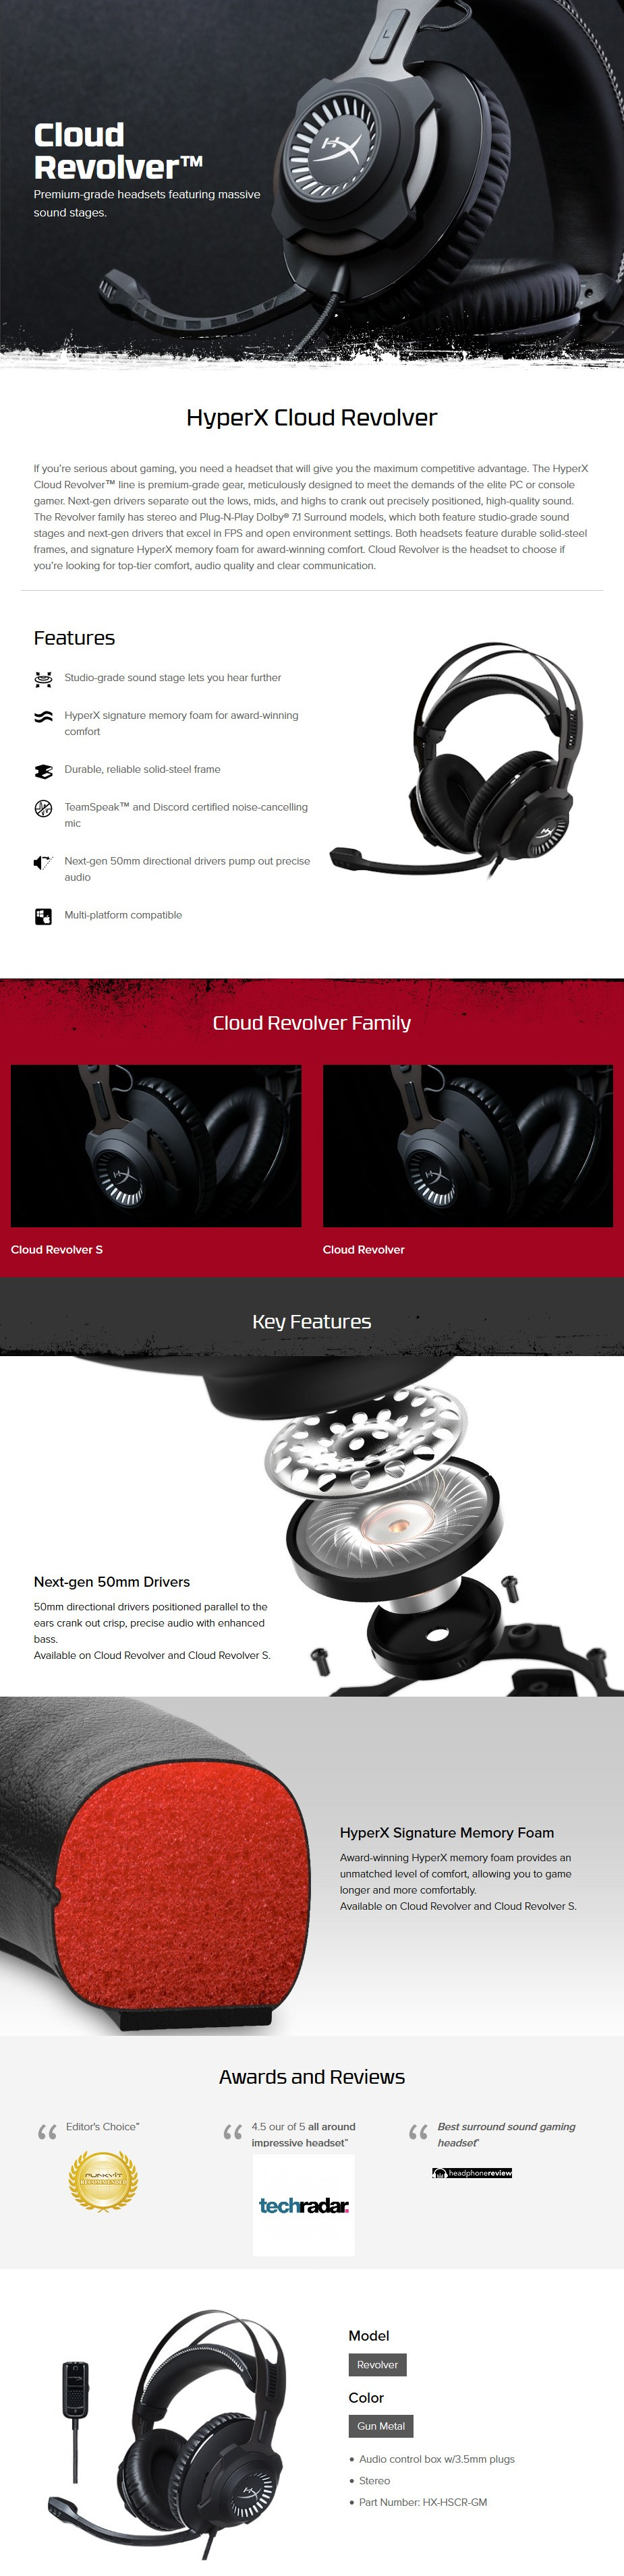 HyperX Cloud Revolver Gaming Headset - Black Display Overview 1